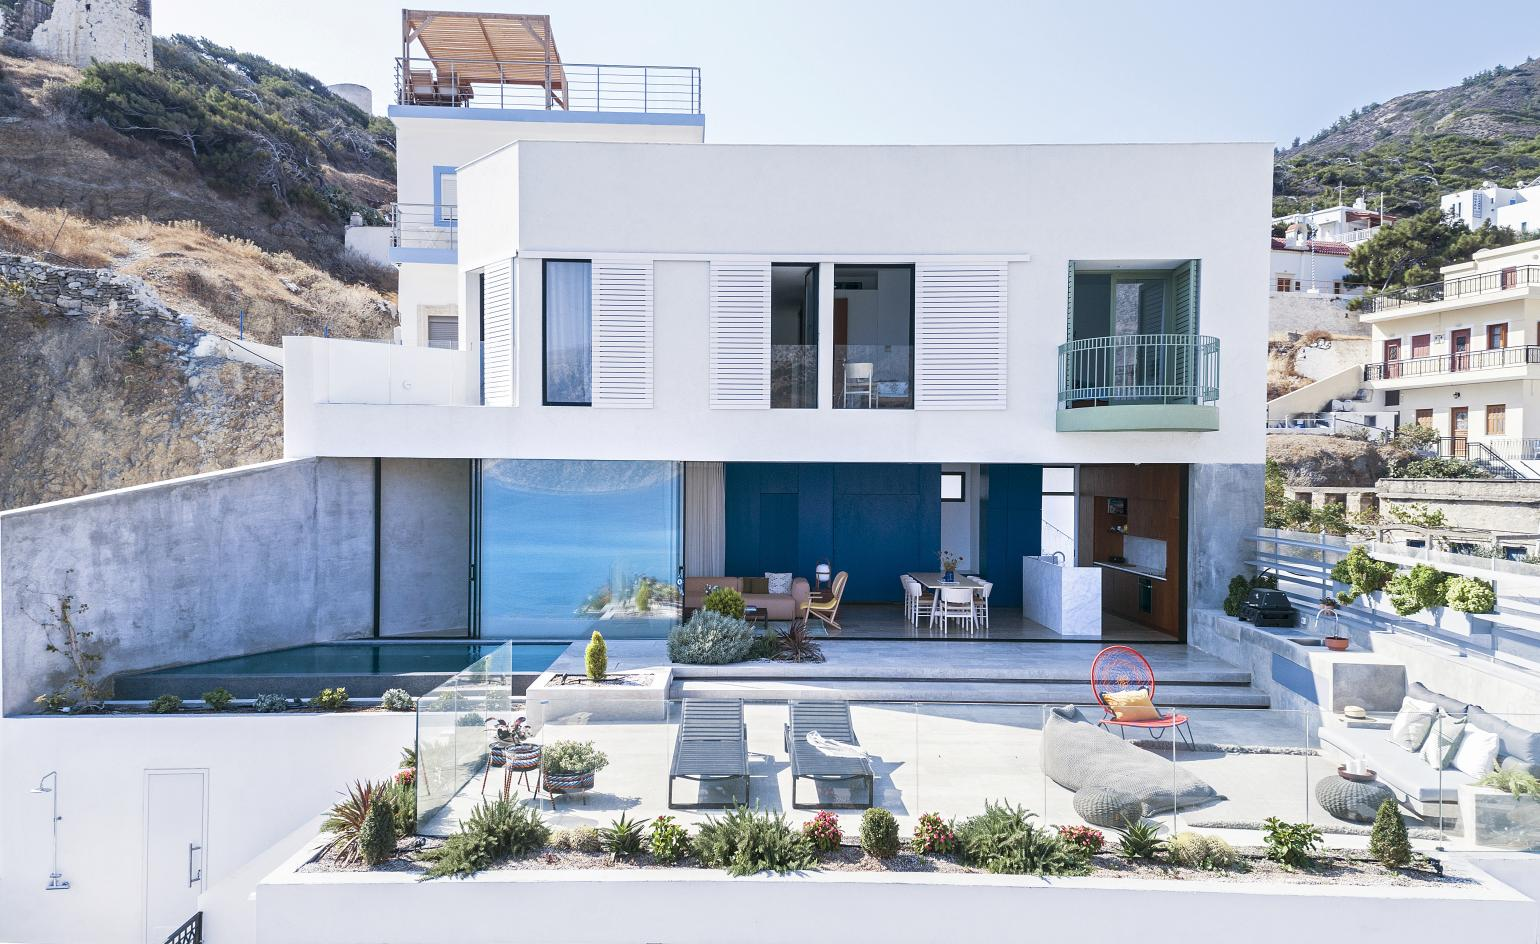 OOAK designs rooftop retreat on the Greek island of Karpathos